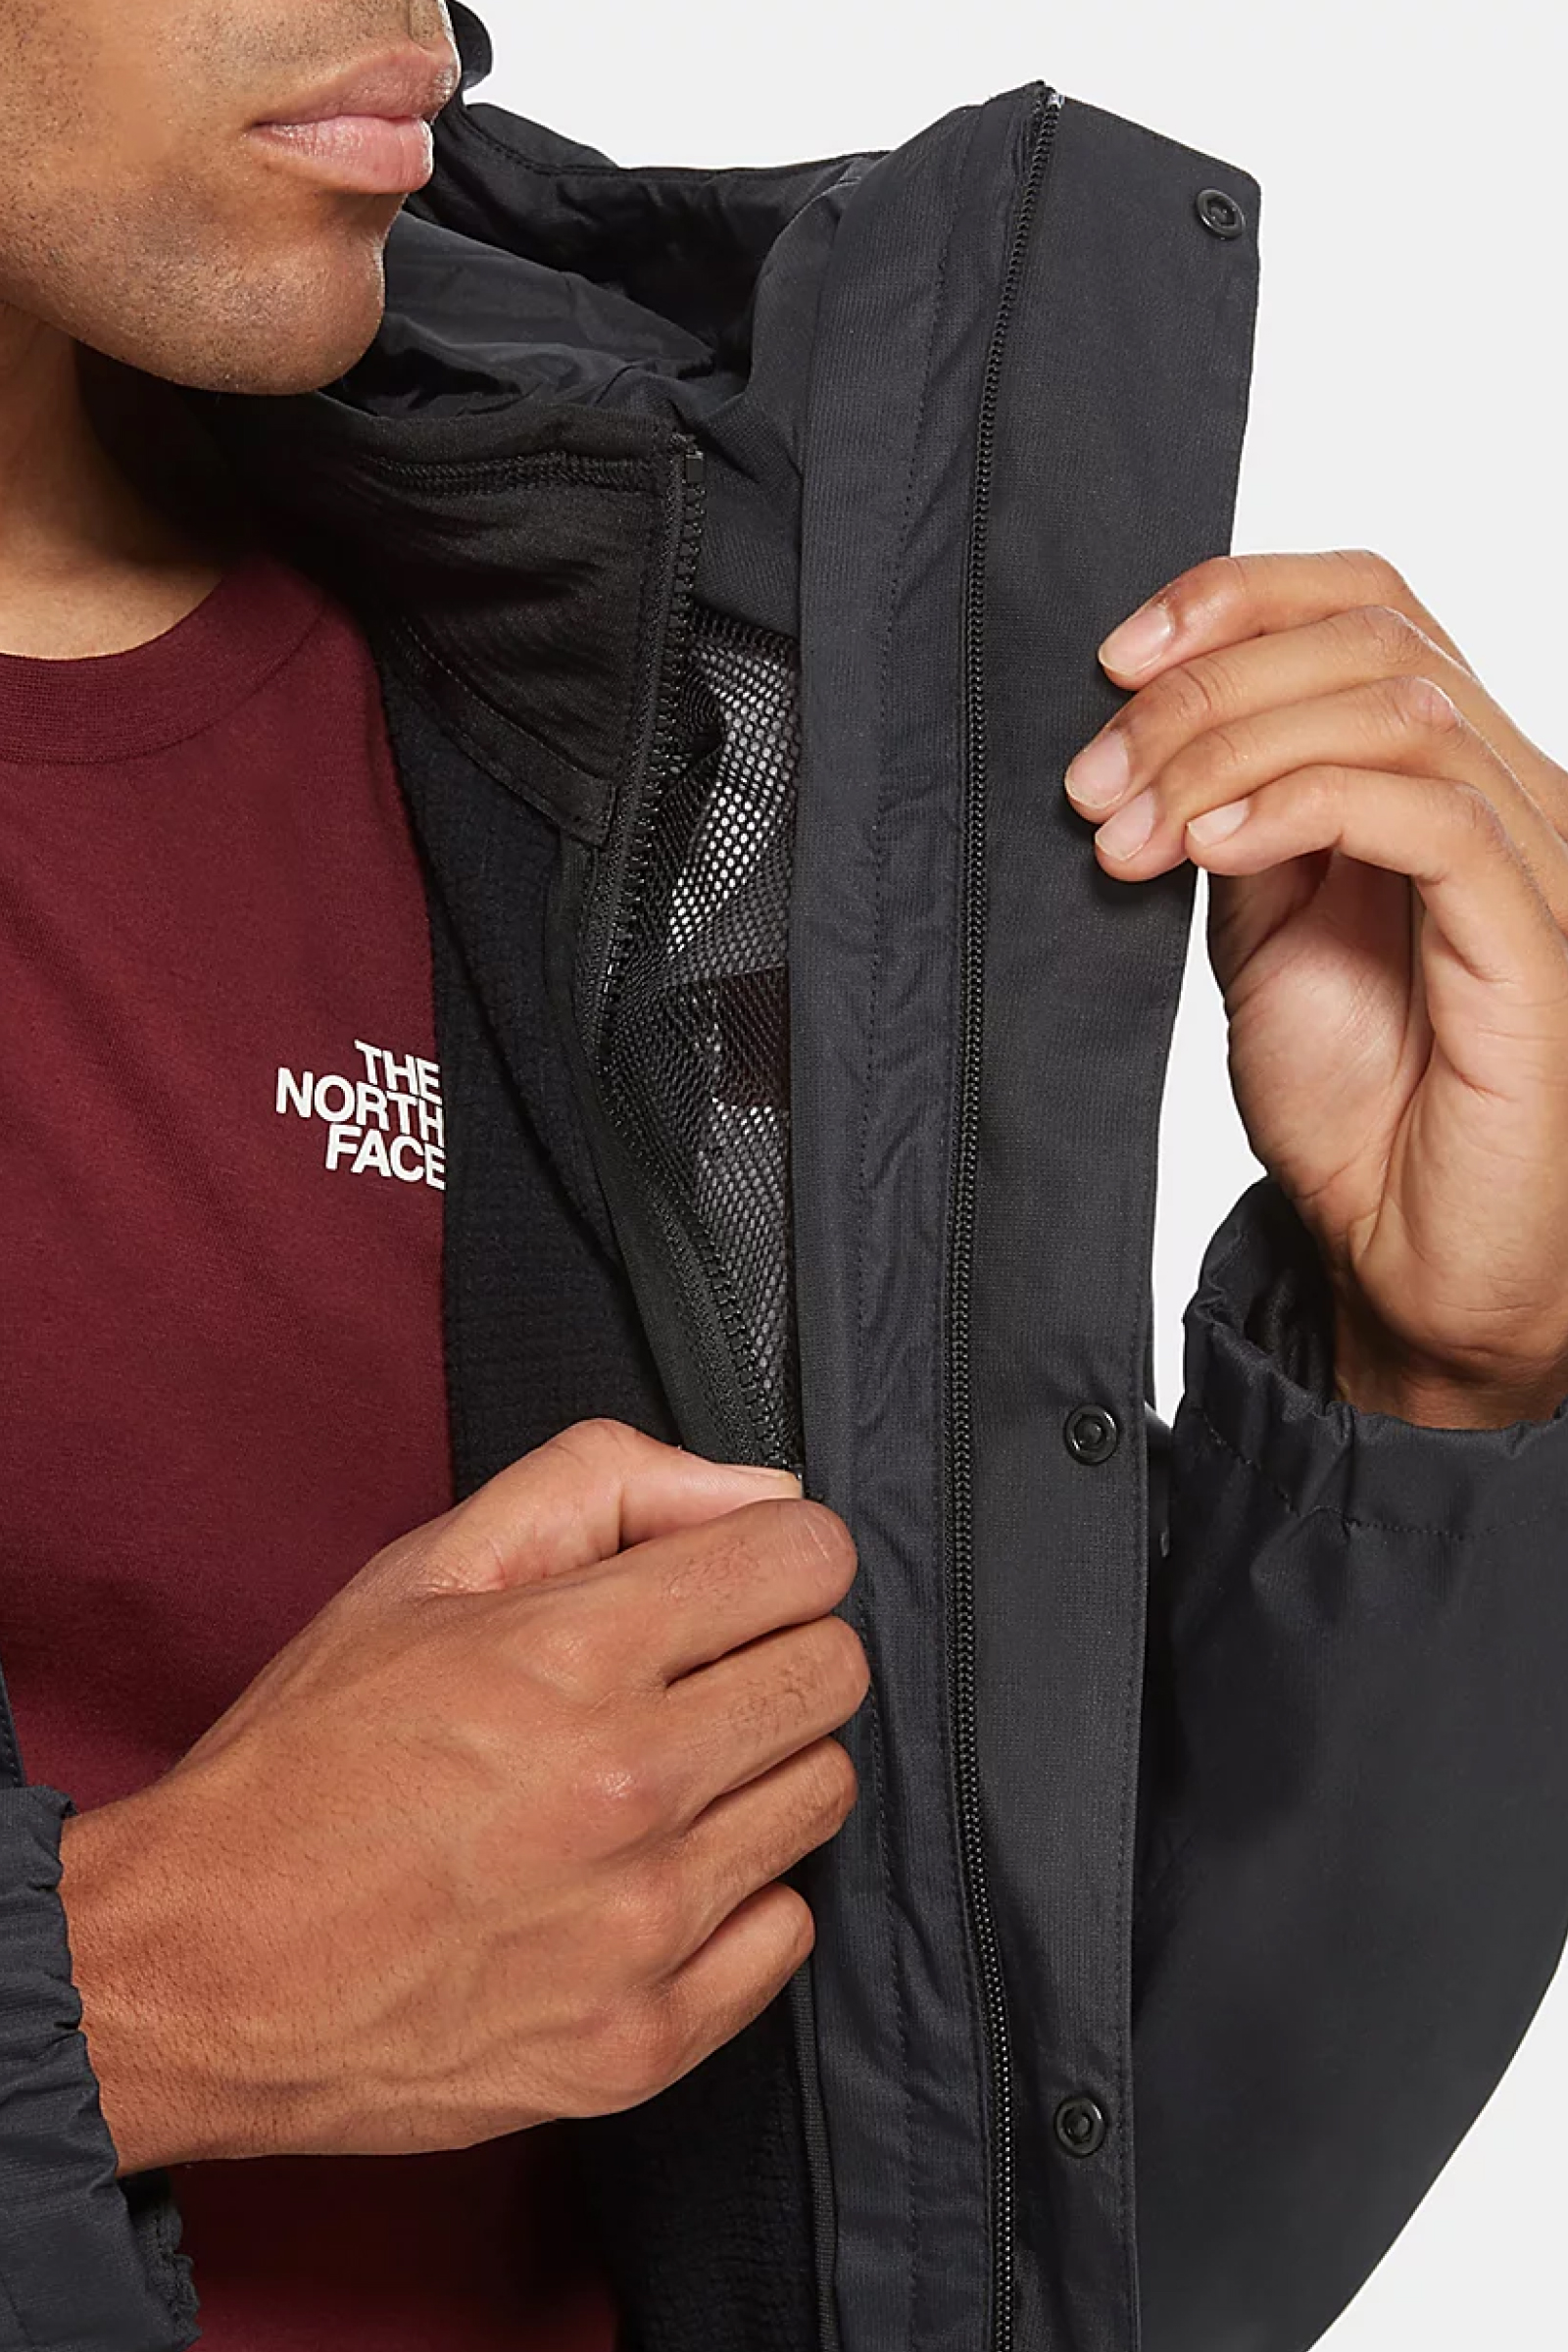 THE NORTH FACE Men's Quest ZIP-IN Triclimate Model Jacket THE NORTH FACE | Jacket | 3YFHJK3